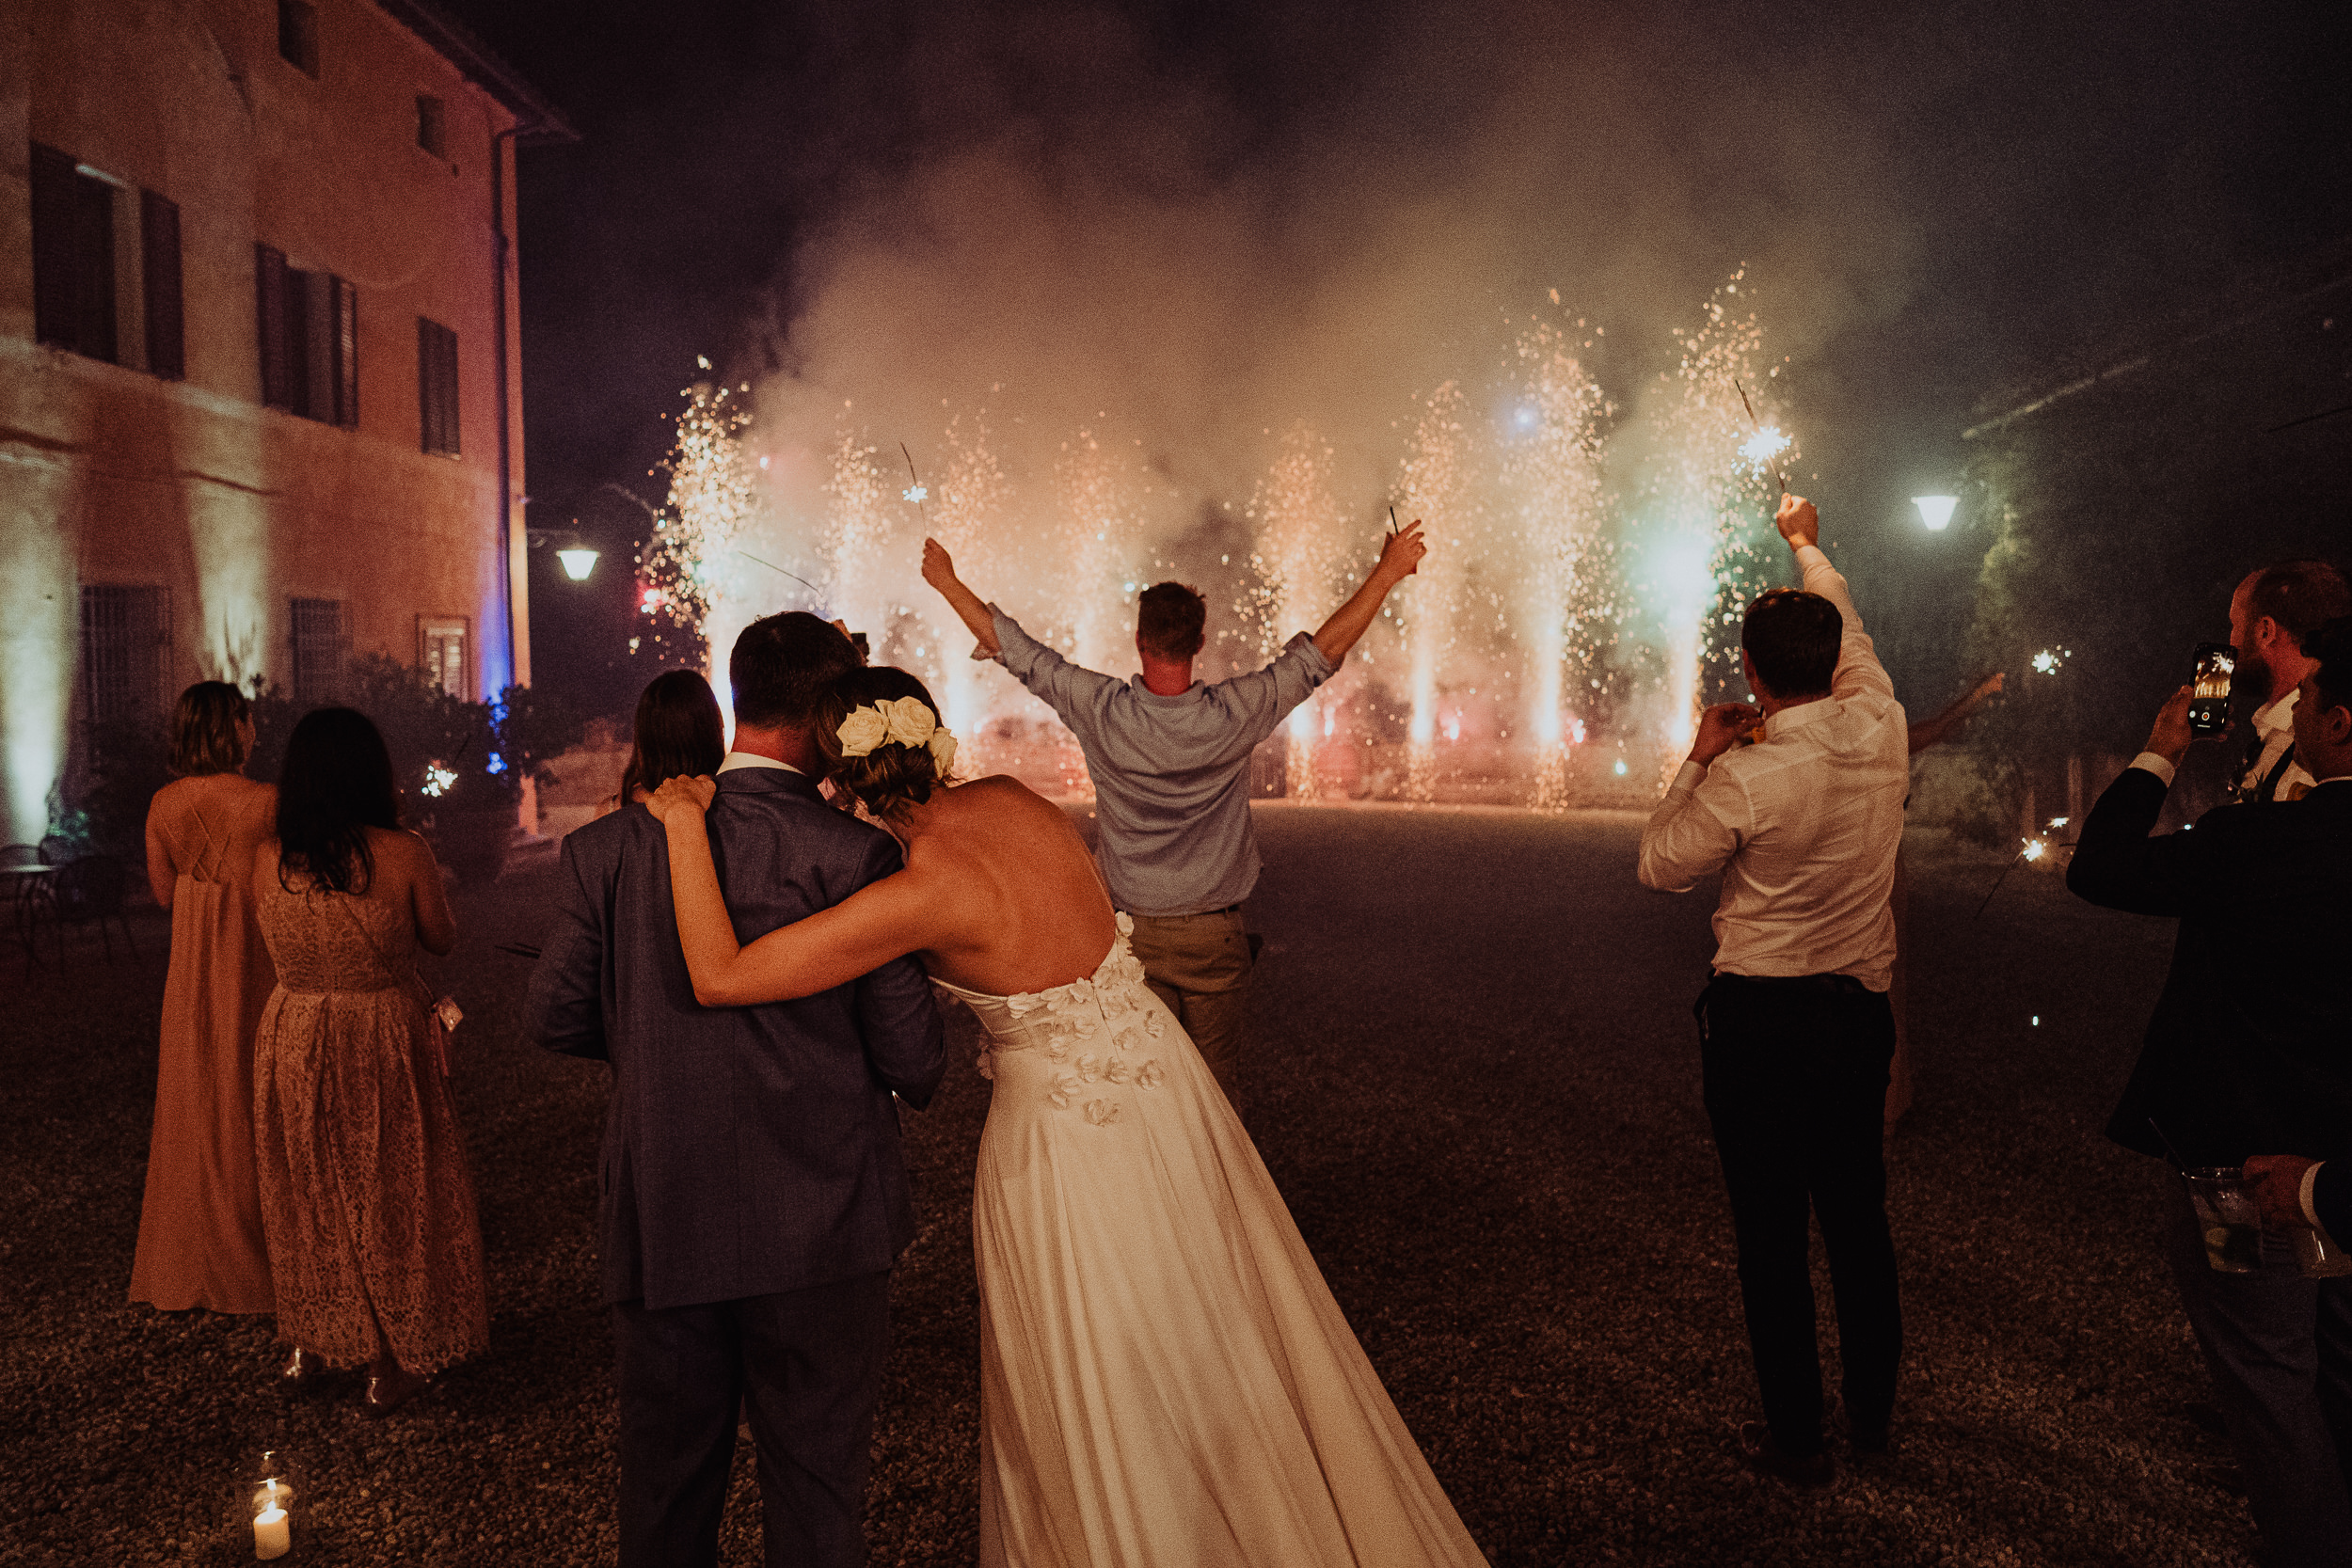 Tuscan Villa Wedding - The Bride and Groom watch the fireworks